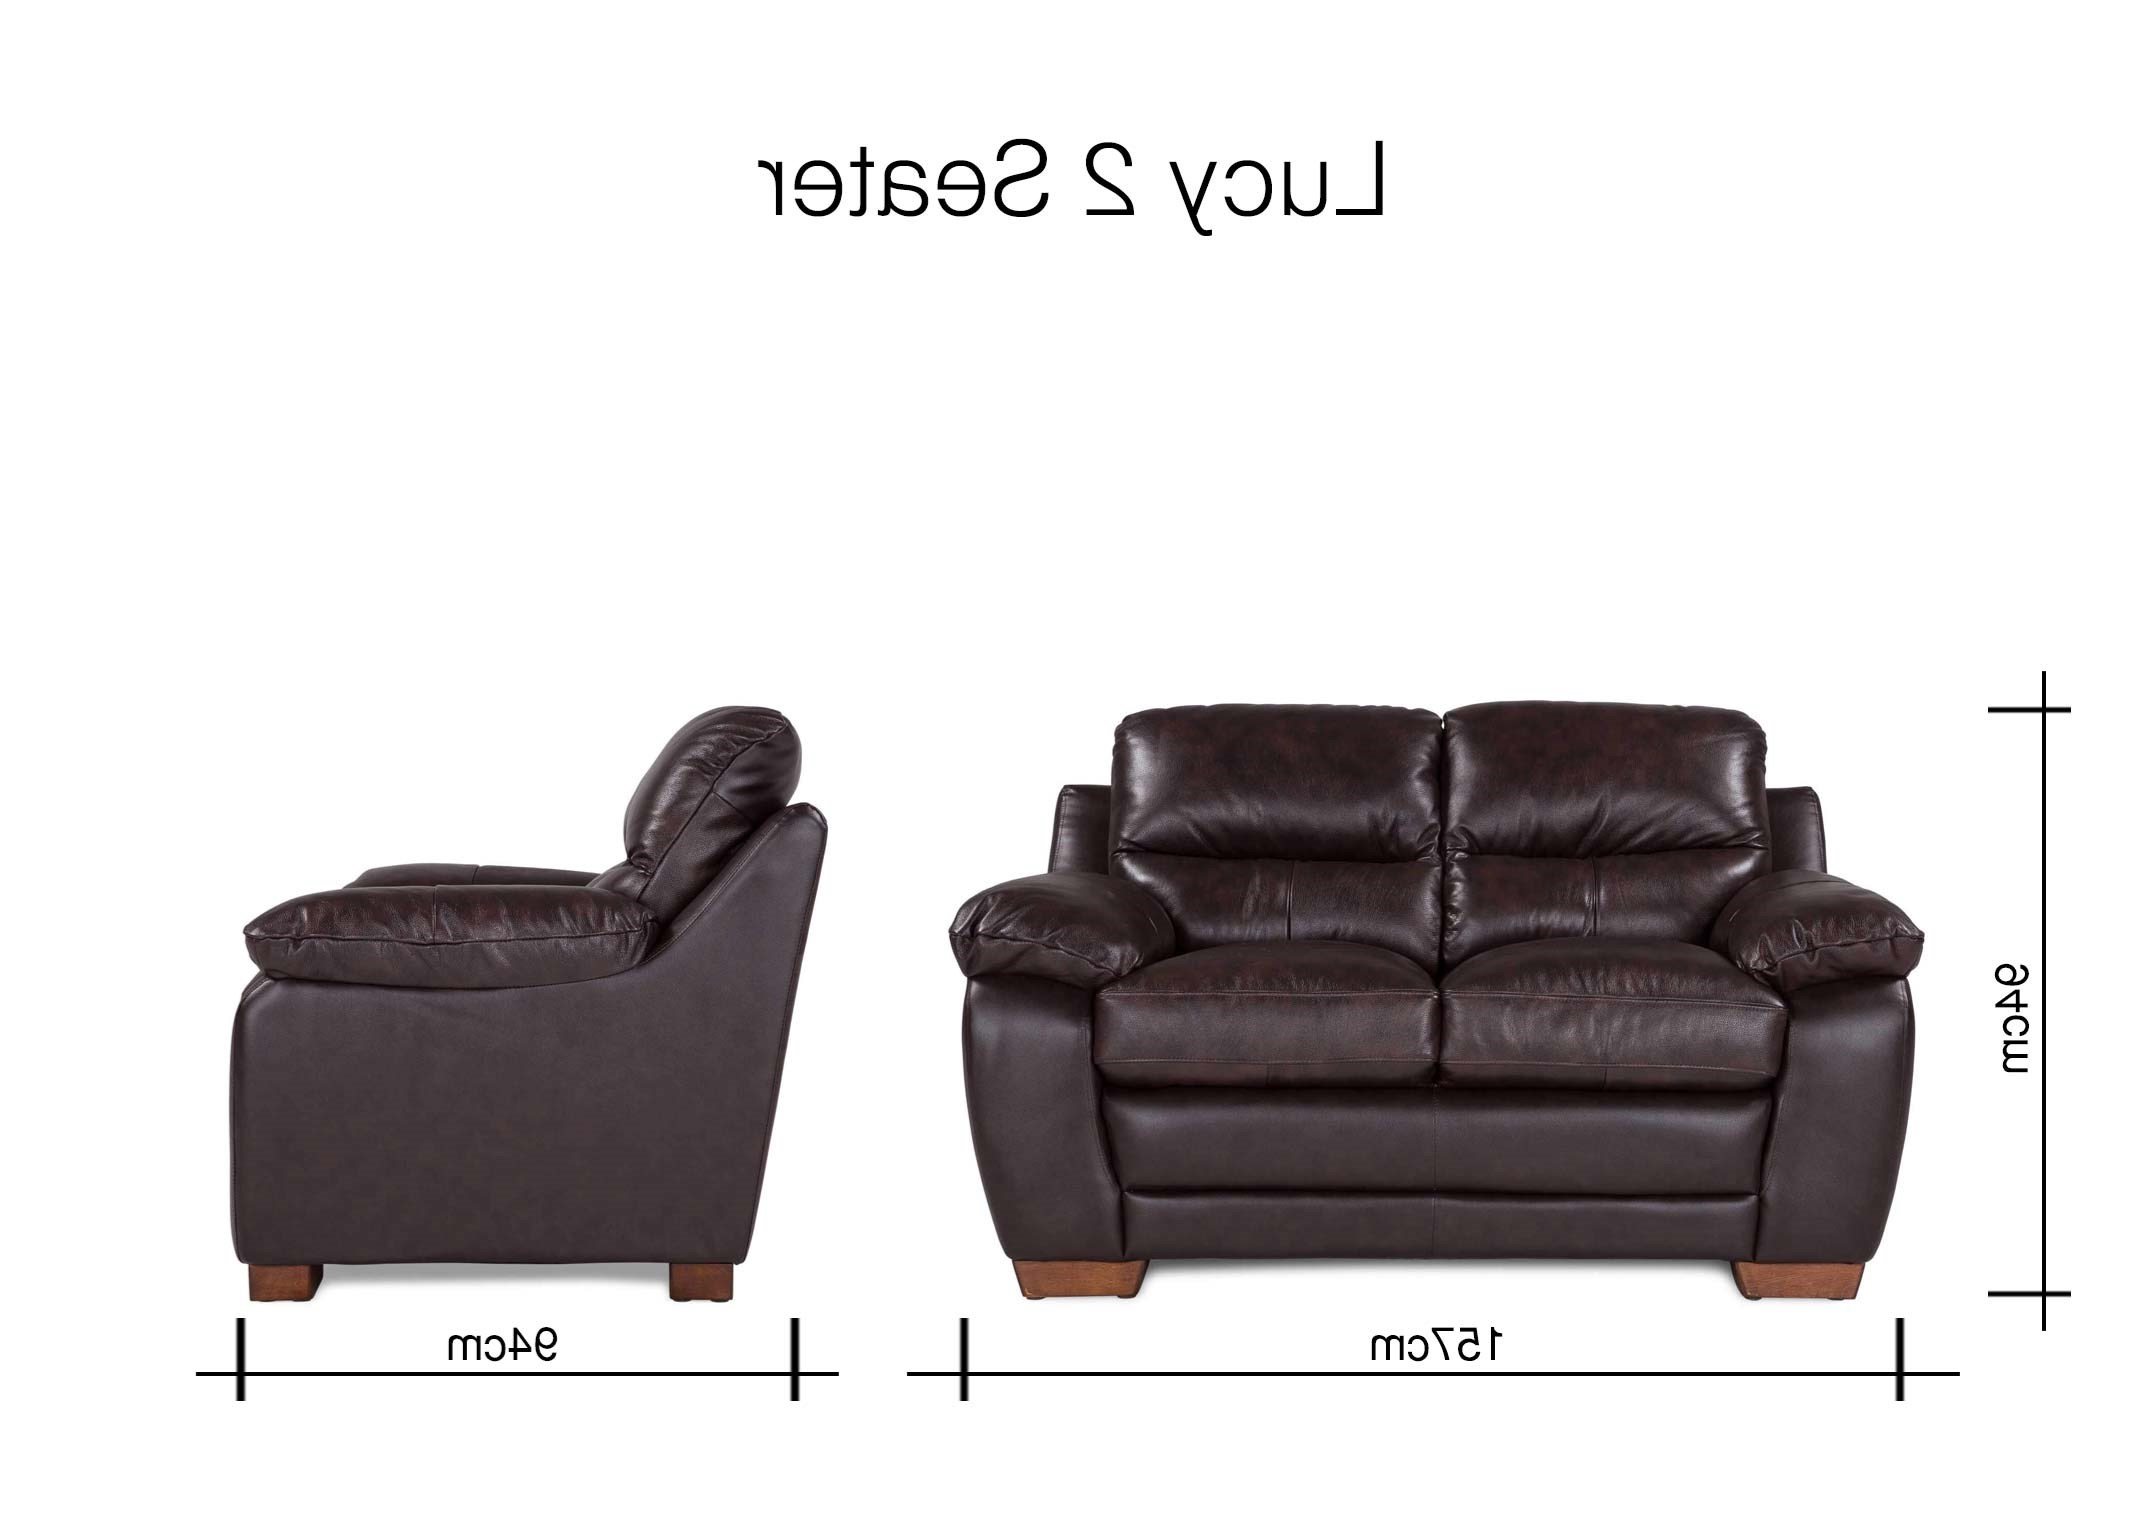 Lucy Grey Sofa Chairs Pertaining To Current Contemporary Brown Leather 2 Seater Sofa – Lucy – Ez Living Furniture (View 20 of 20)